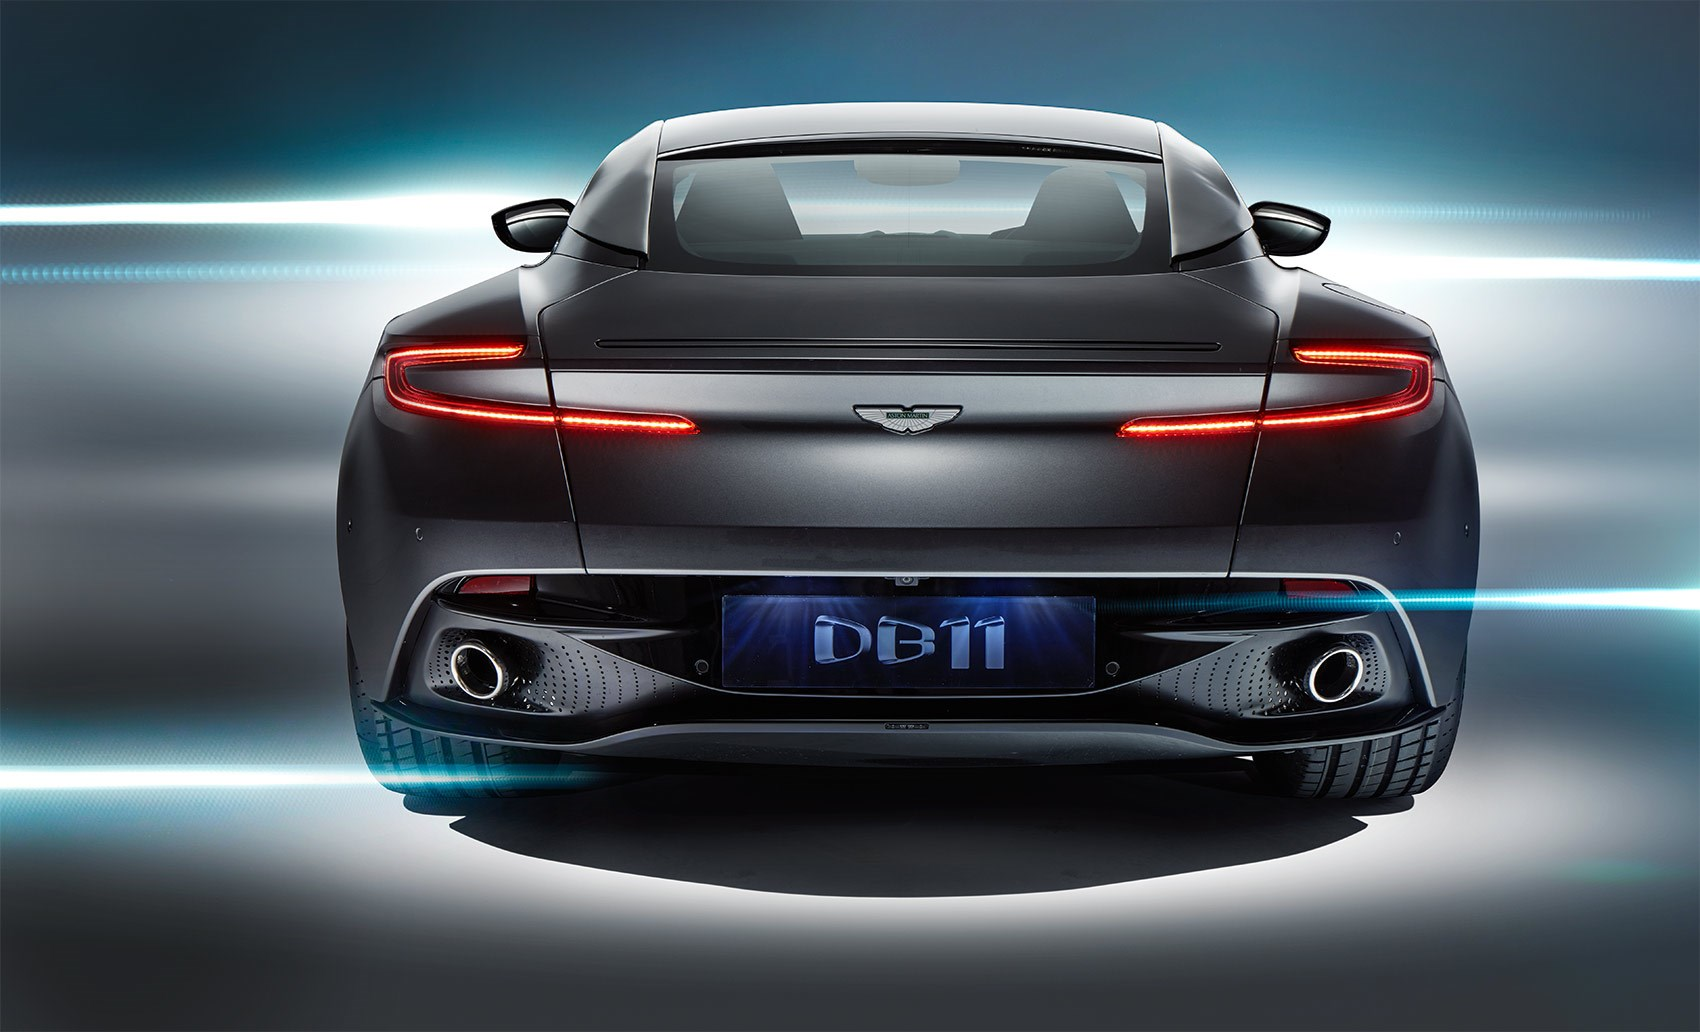 Weve been expecting you new Aston Martin DB11 in detail CAR